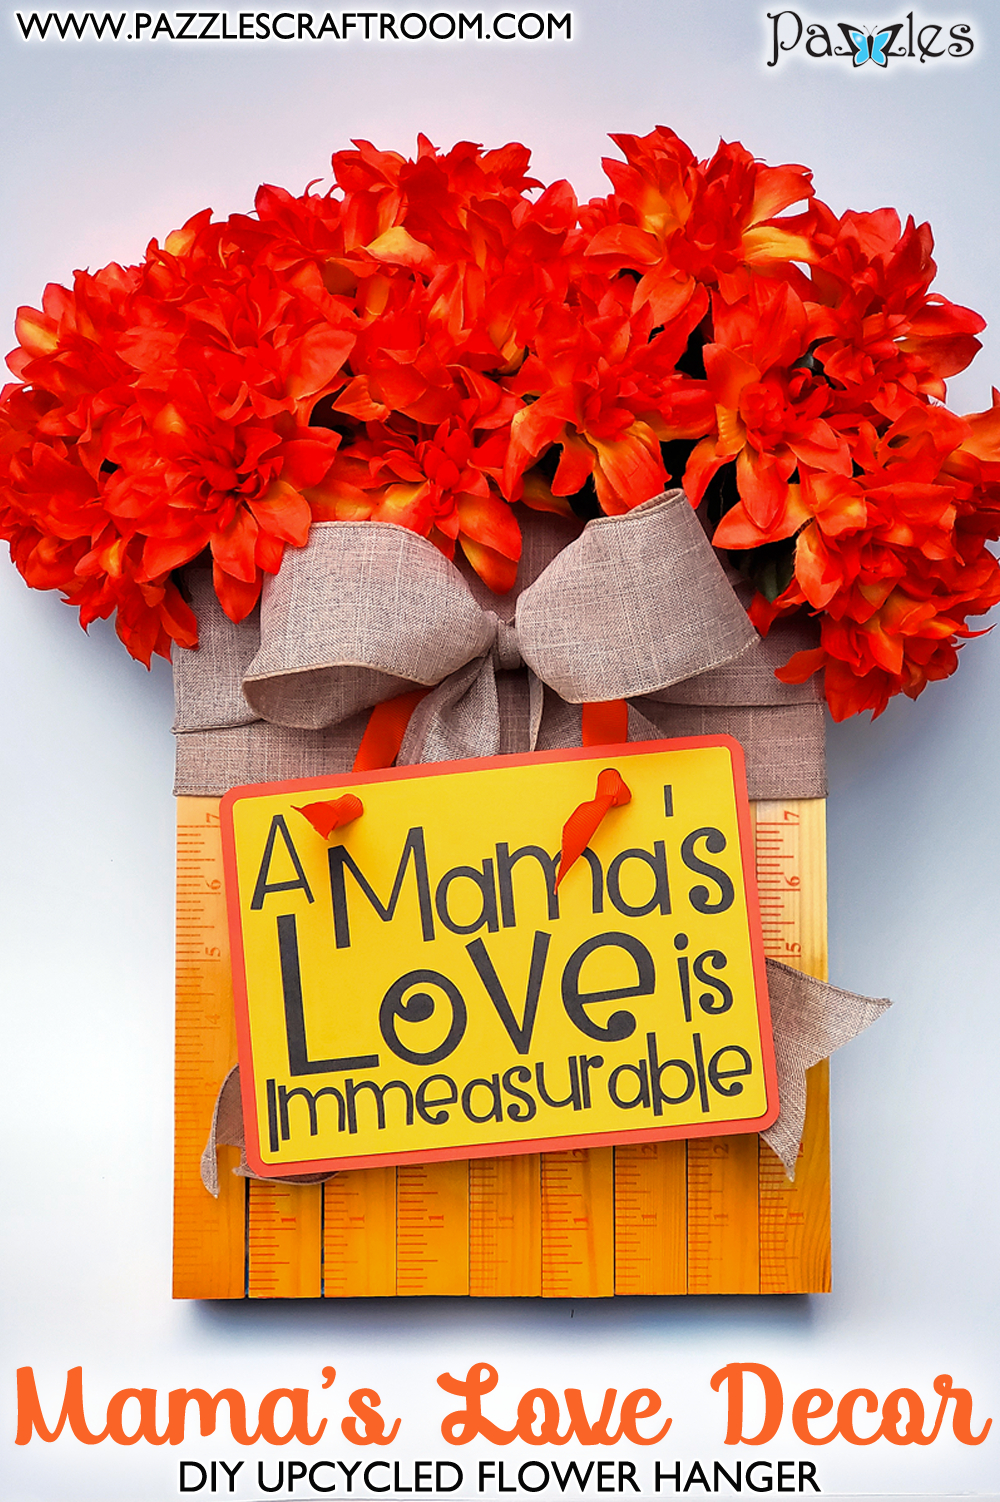 Pazzles DIY Mama's Love Flower Wall Hanger with instant SVG download. Instant SVG download compatible with all major electronic cutters including Pazzles Inspiration, Cricut, and Silhouette Cameo. Design by Renee Smart.